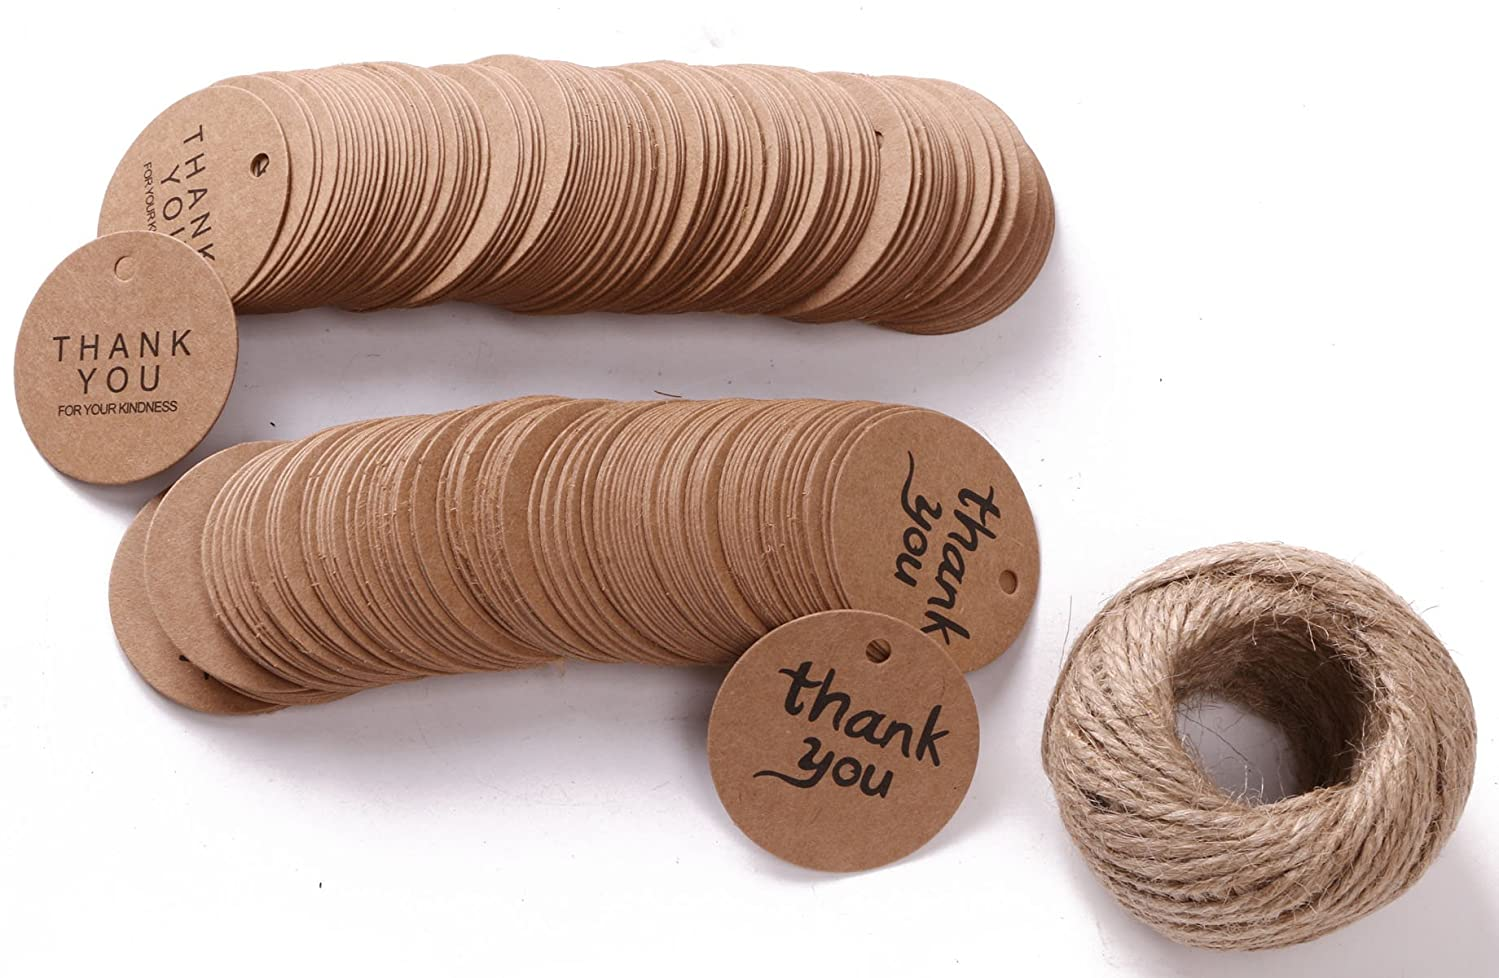 Shapenty Round Kraft Paper Gift Tags Labels Circle DIY Crafts Thank You Hanging Tags with 100 Feet Jute Twine for Christmas Holiday Birthday Wedding Favor Decorative Presents, 2 Designs, 200PCS